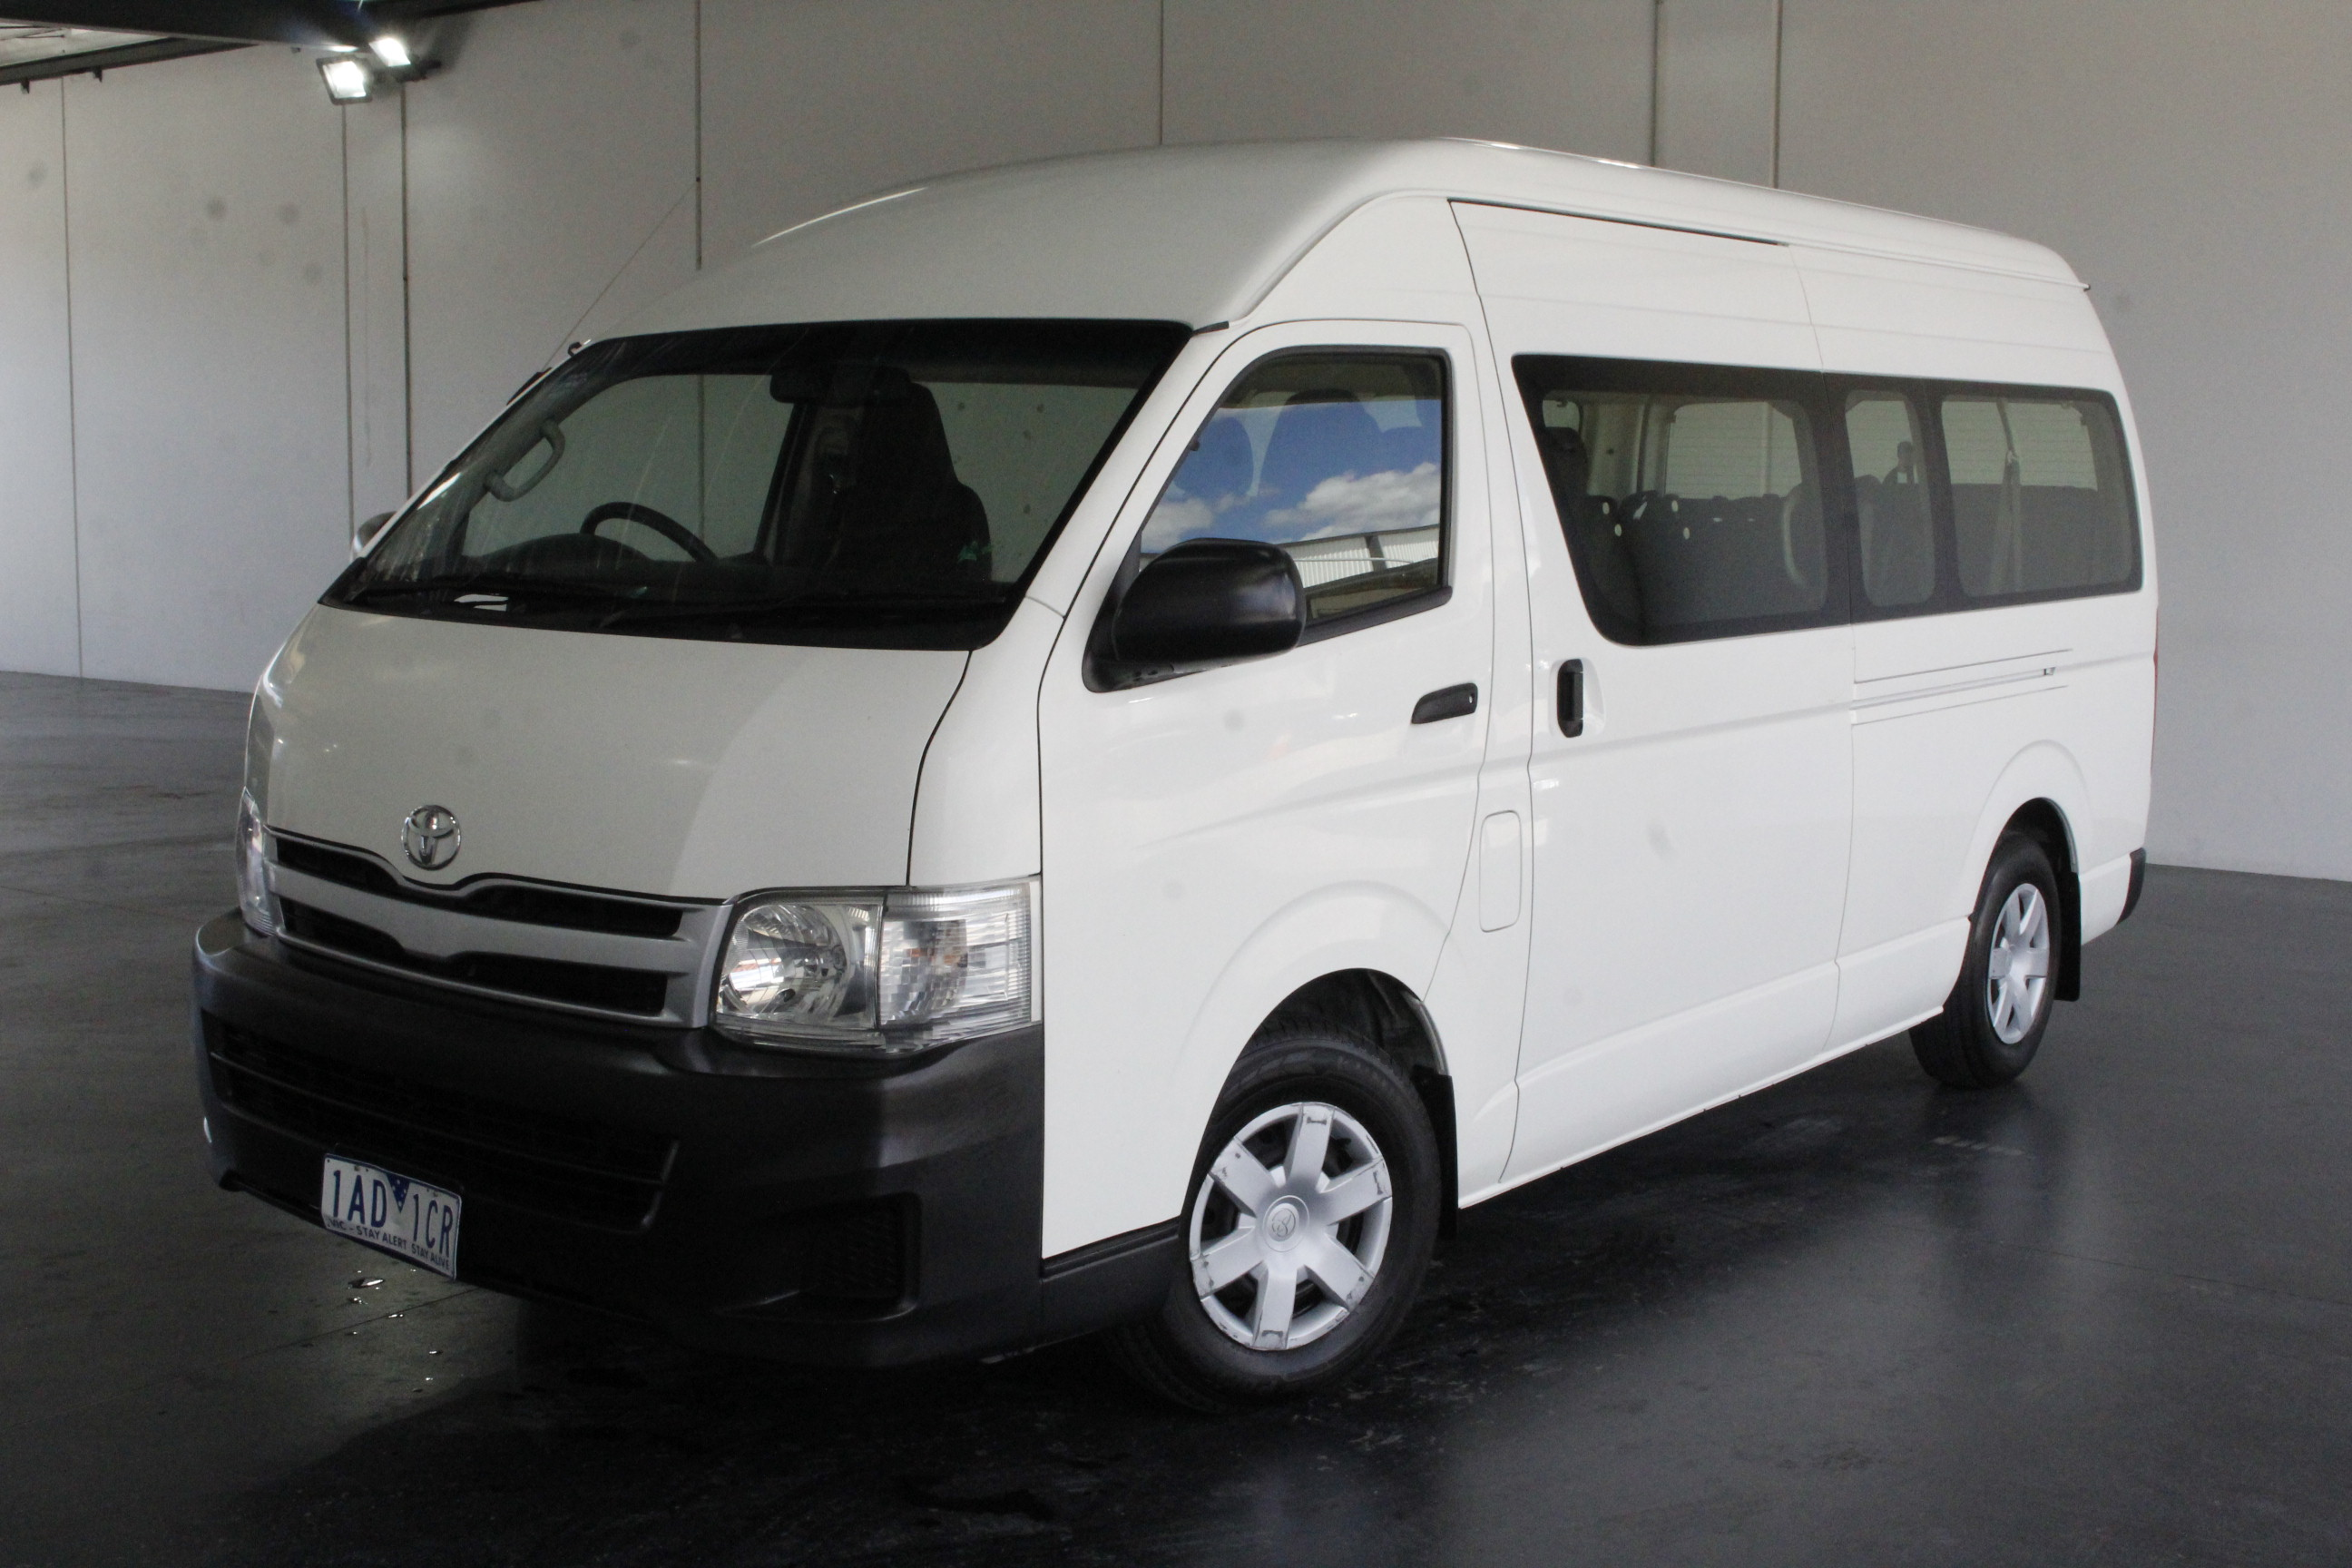 c0fdc5294b 2013 Toyota Hiace Commuter KDH223R Turbo Diesel Automatic 12 Seats Bus  Auction (0001-3439975)